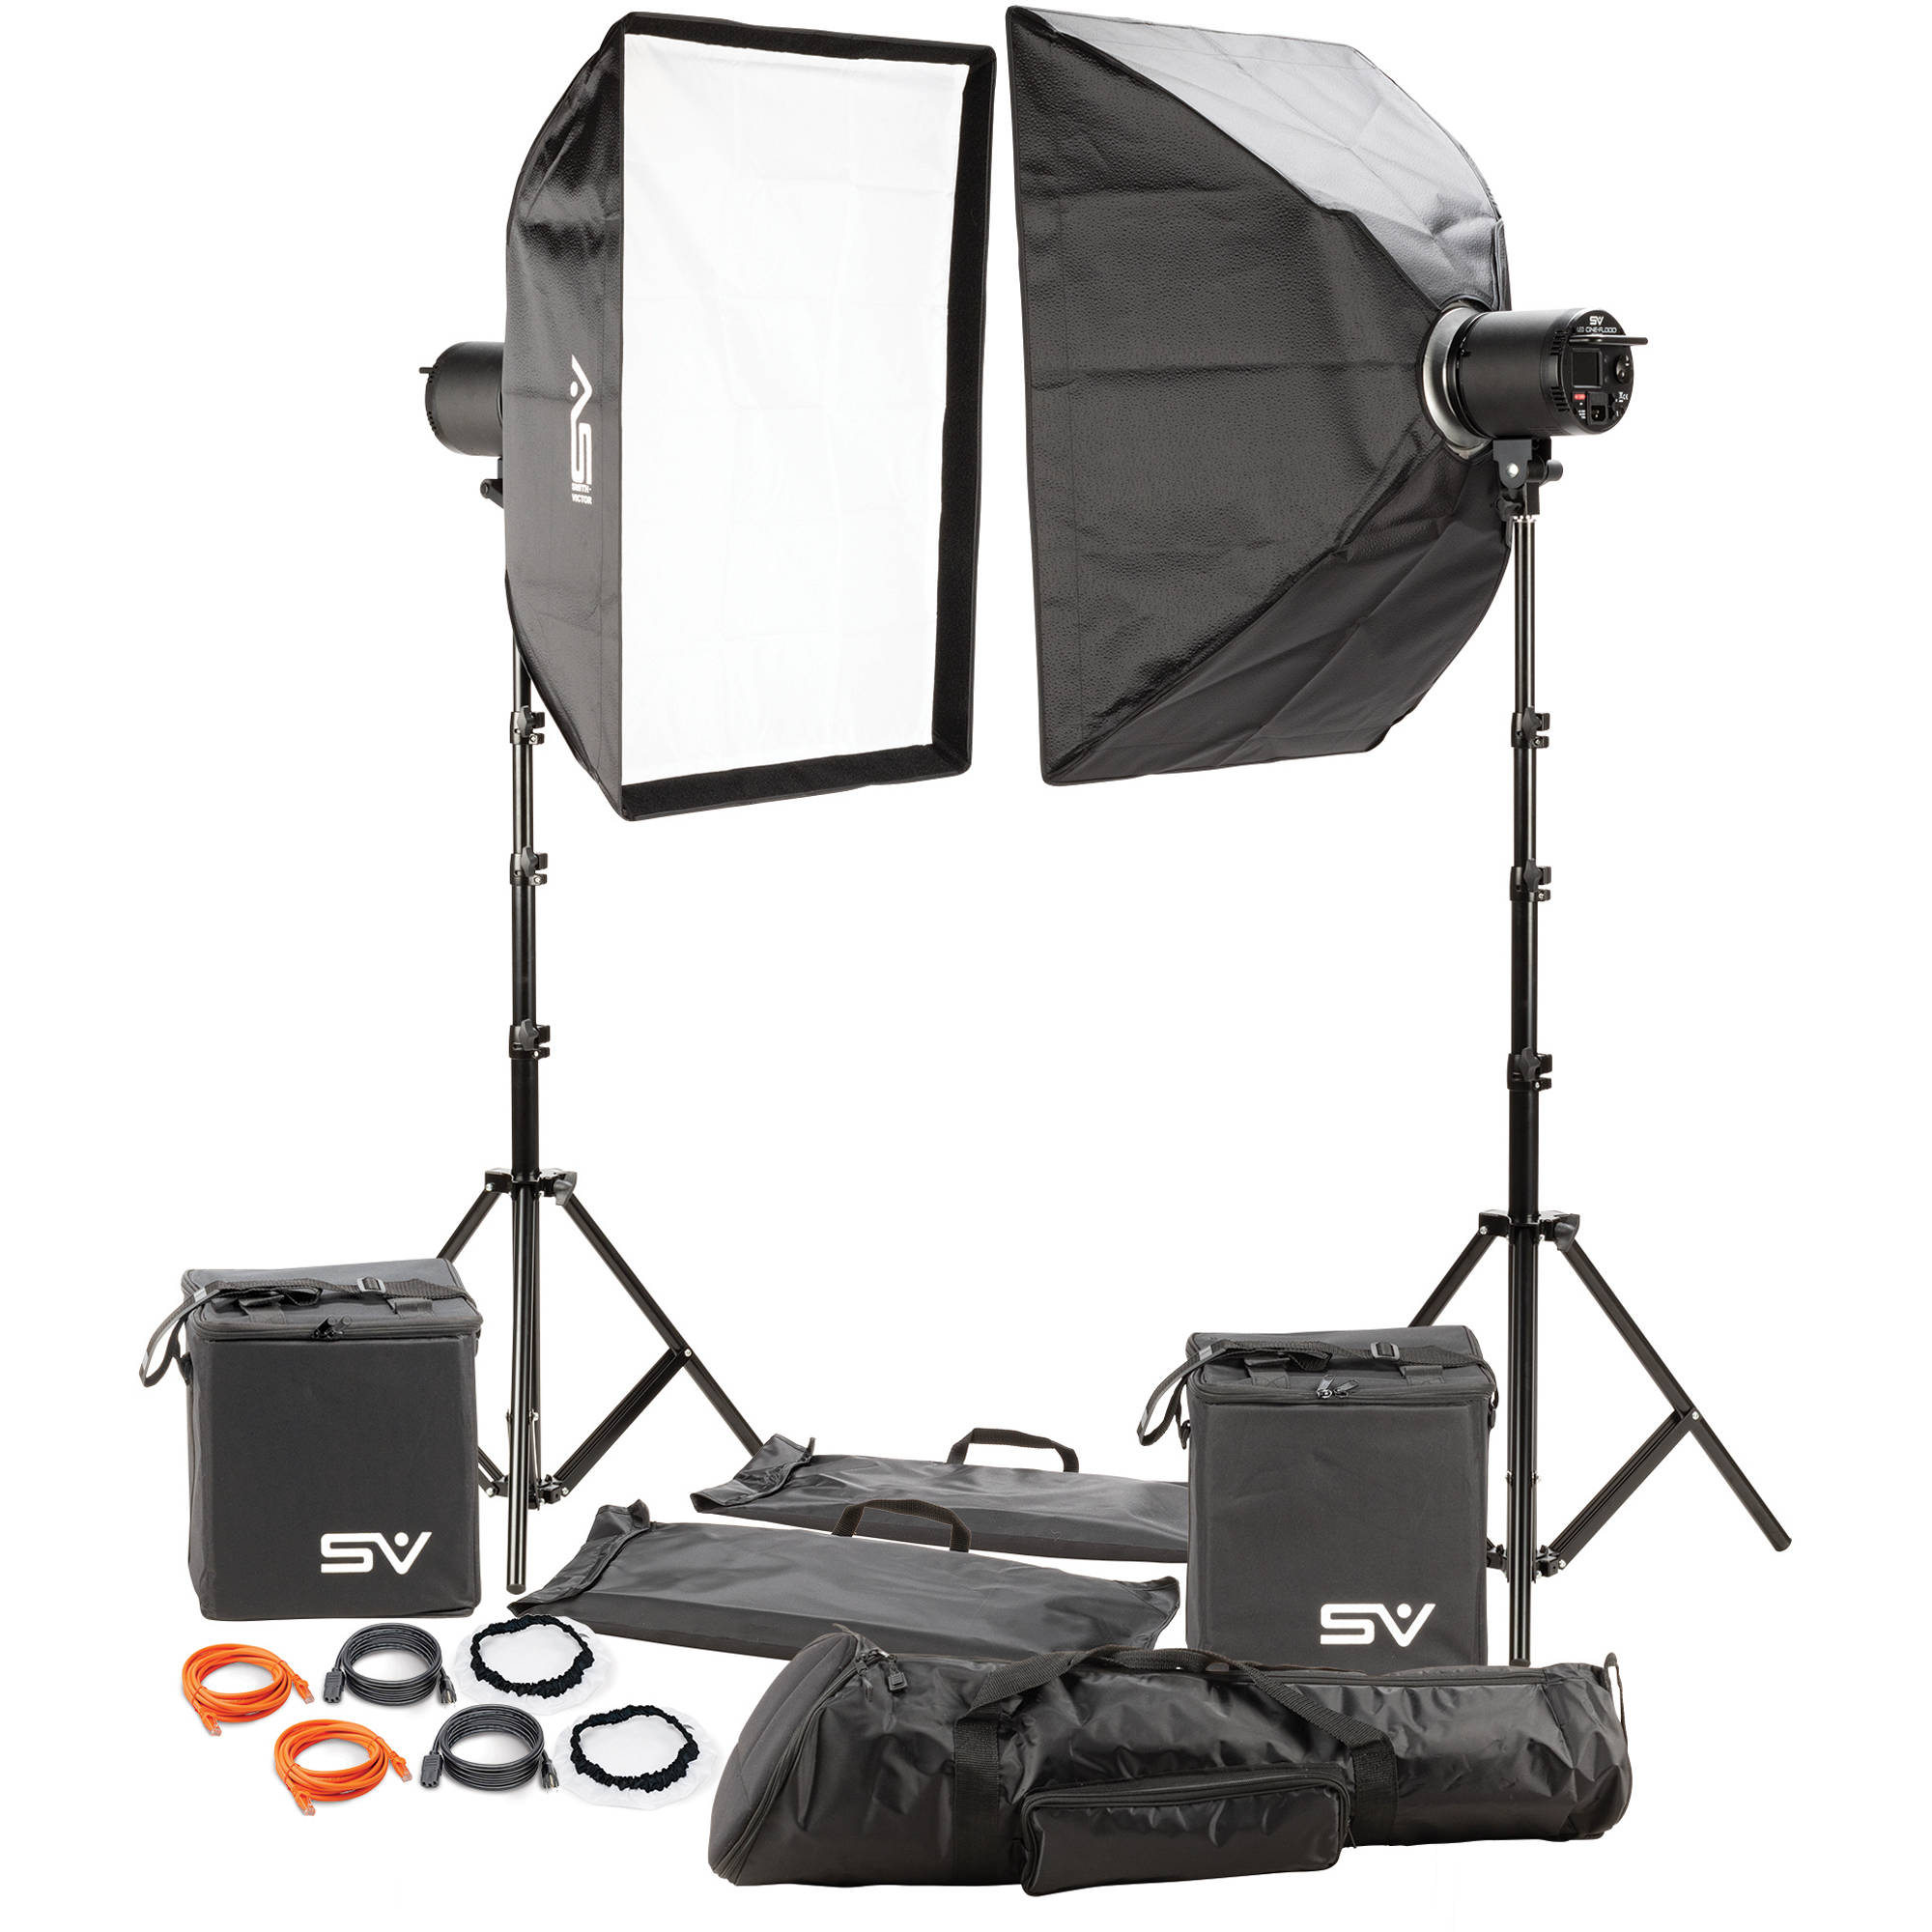 Smith-Victor LED CINE-Flood 1500 with Bowens Mount